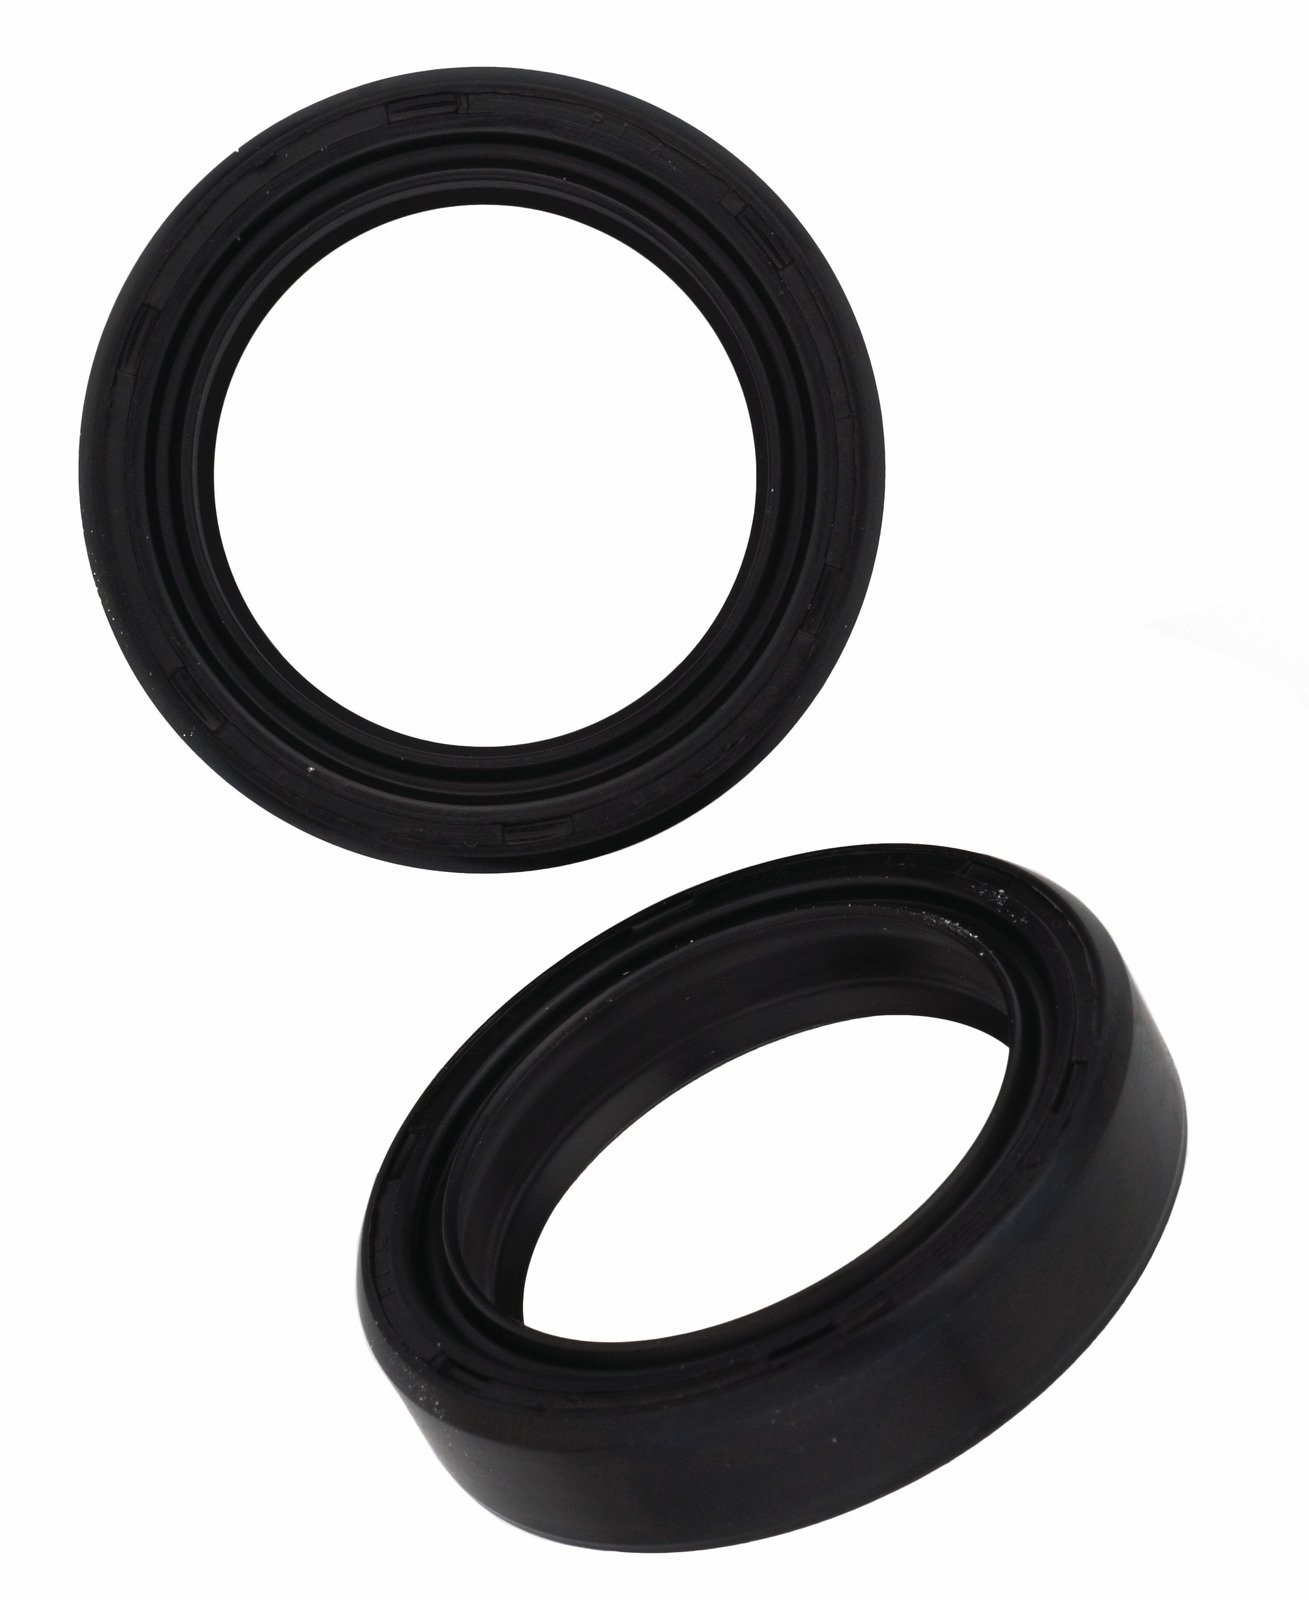 Front Fork Oil Seal Set 30x40 5x10 5mm - 2pcs Pair 1-069